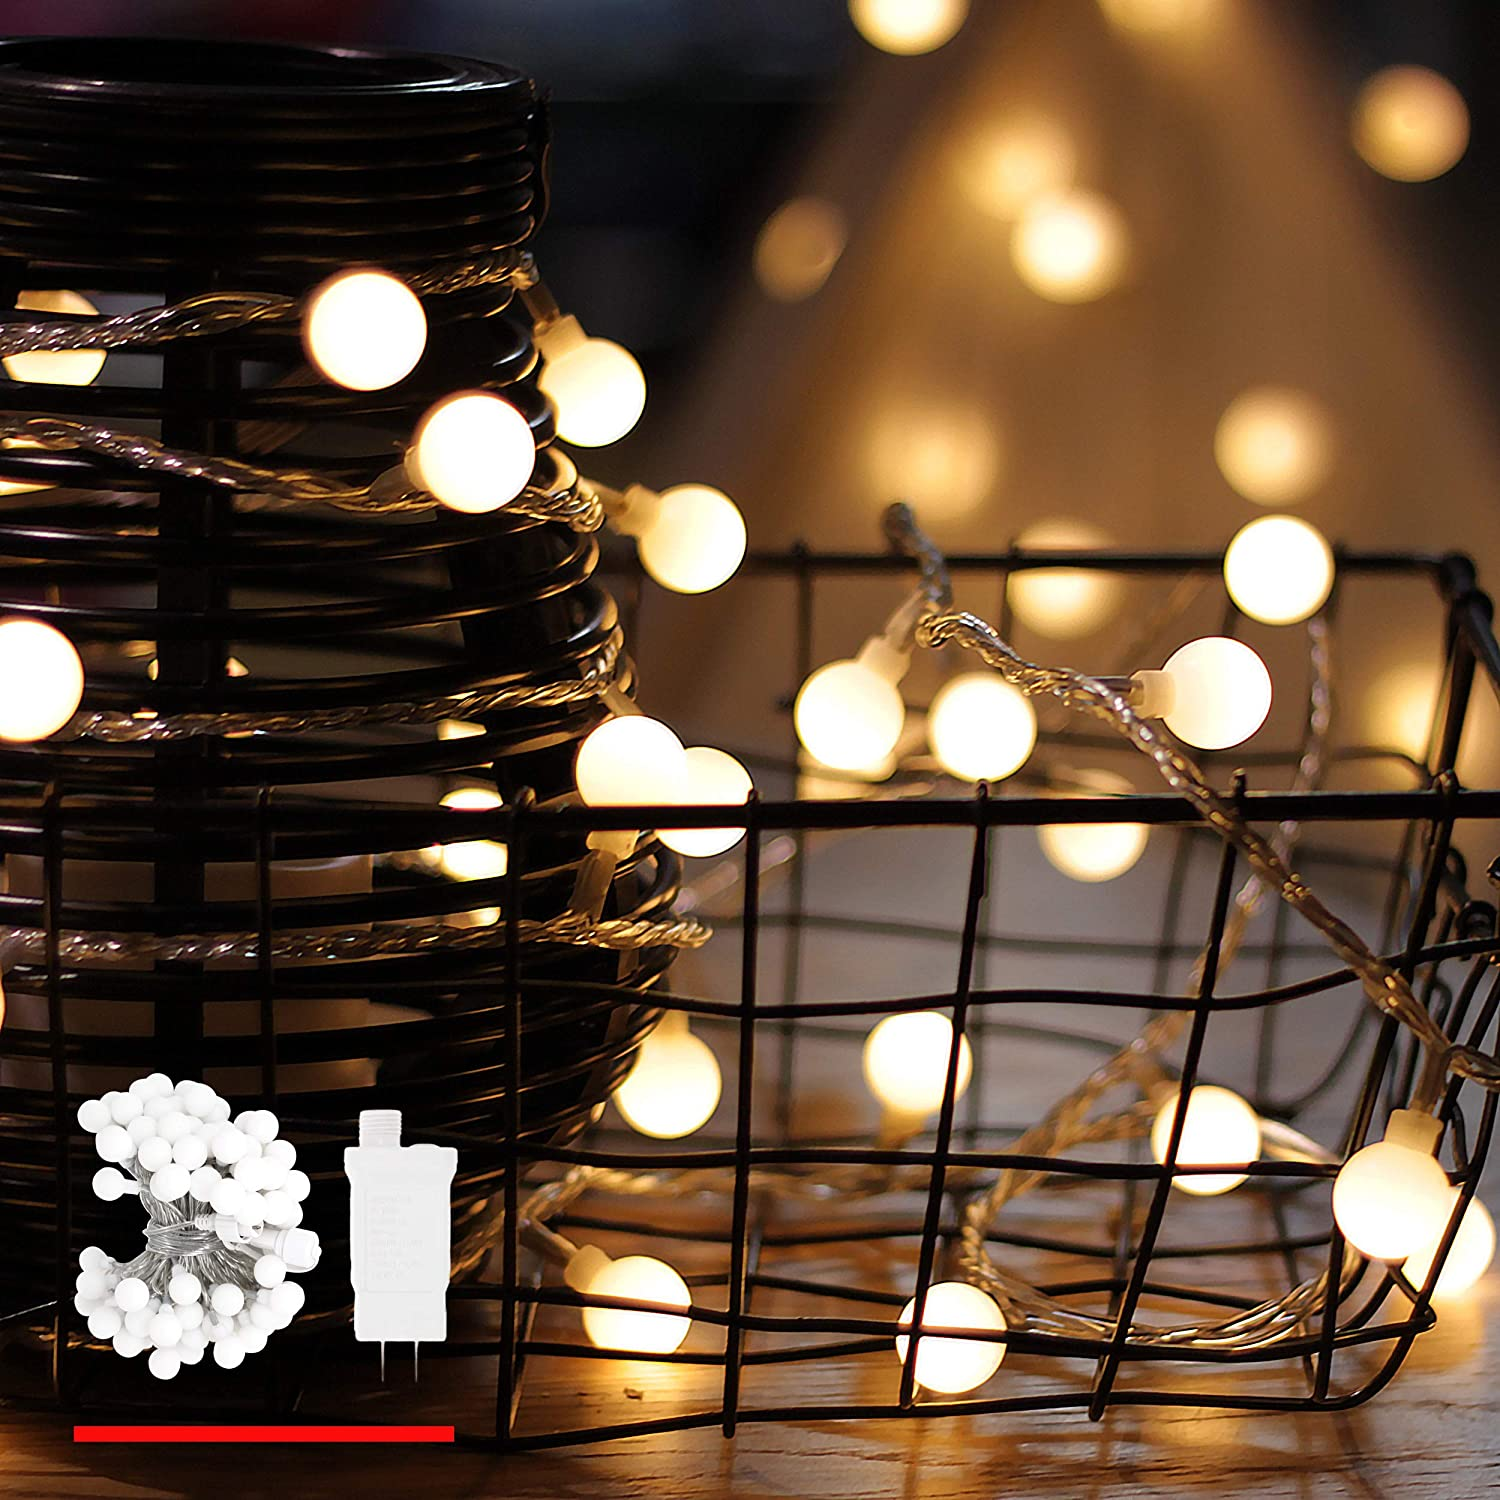 Amazon Com Led String Lights By Mycozylite Plug In String Lights 49ft 100 Led Warm White Globe Lights With Timer Waterproof Perfect For Indoor And Outdoor Use With 30v Low Voltage Transformer Extendable